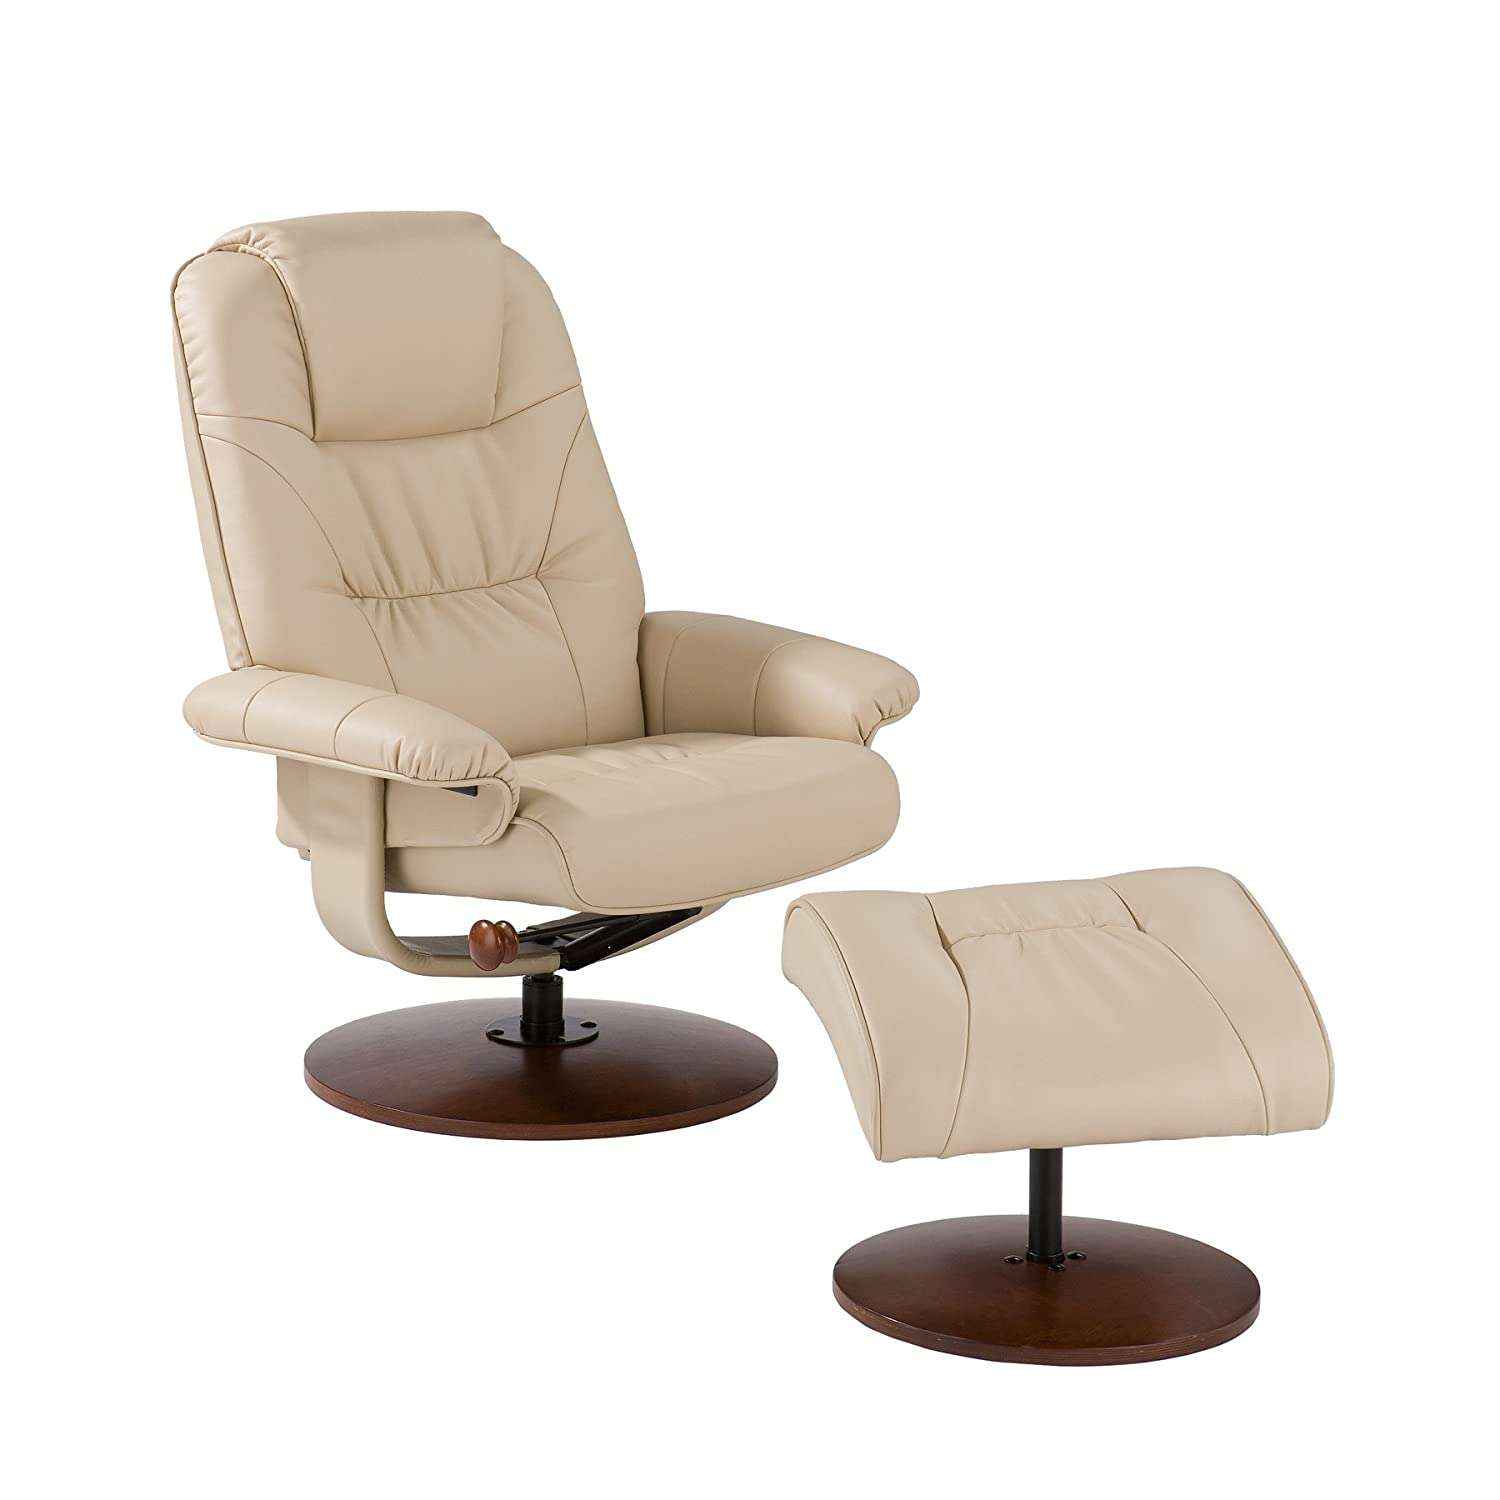 luxury leather recliner chairs. amazon.com: bonded leather recliner and ottoman - taupe: kitchen \u0026 dining luxury chairs u